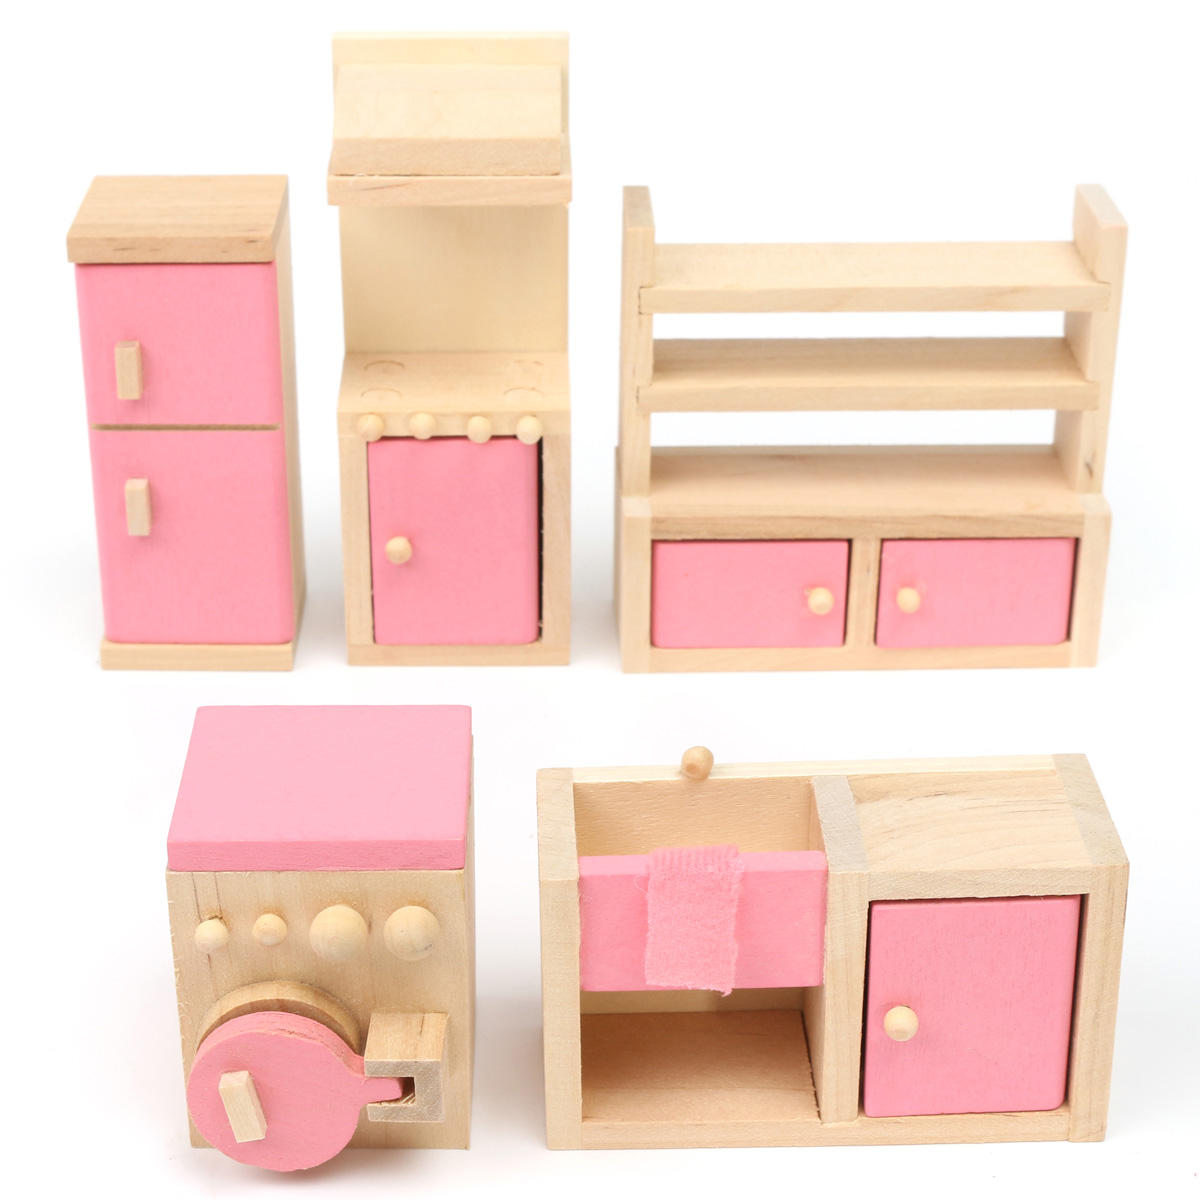 Wooden Furniture Room Set Dolls House Family Miniature For Kids Children Toy Ebay